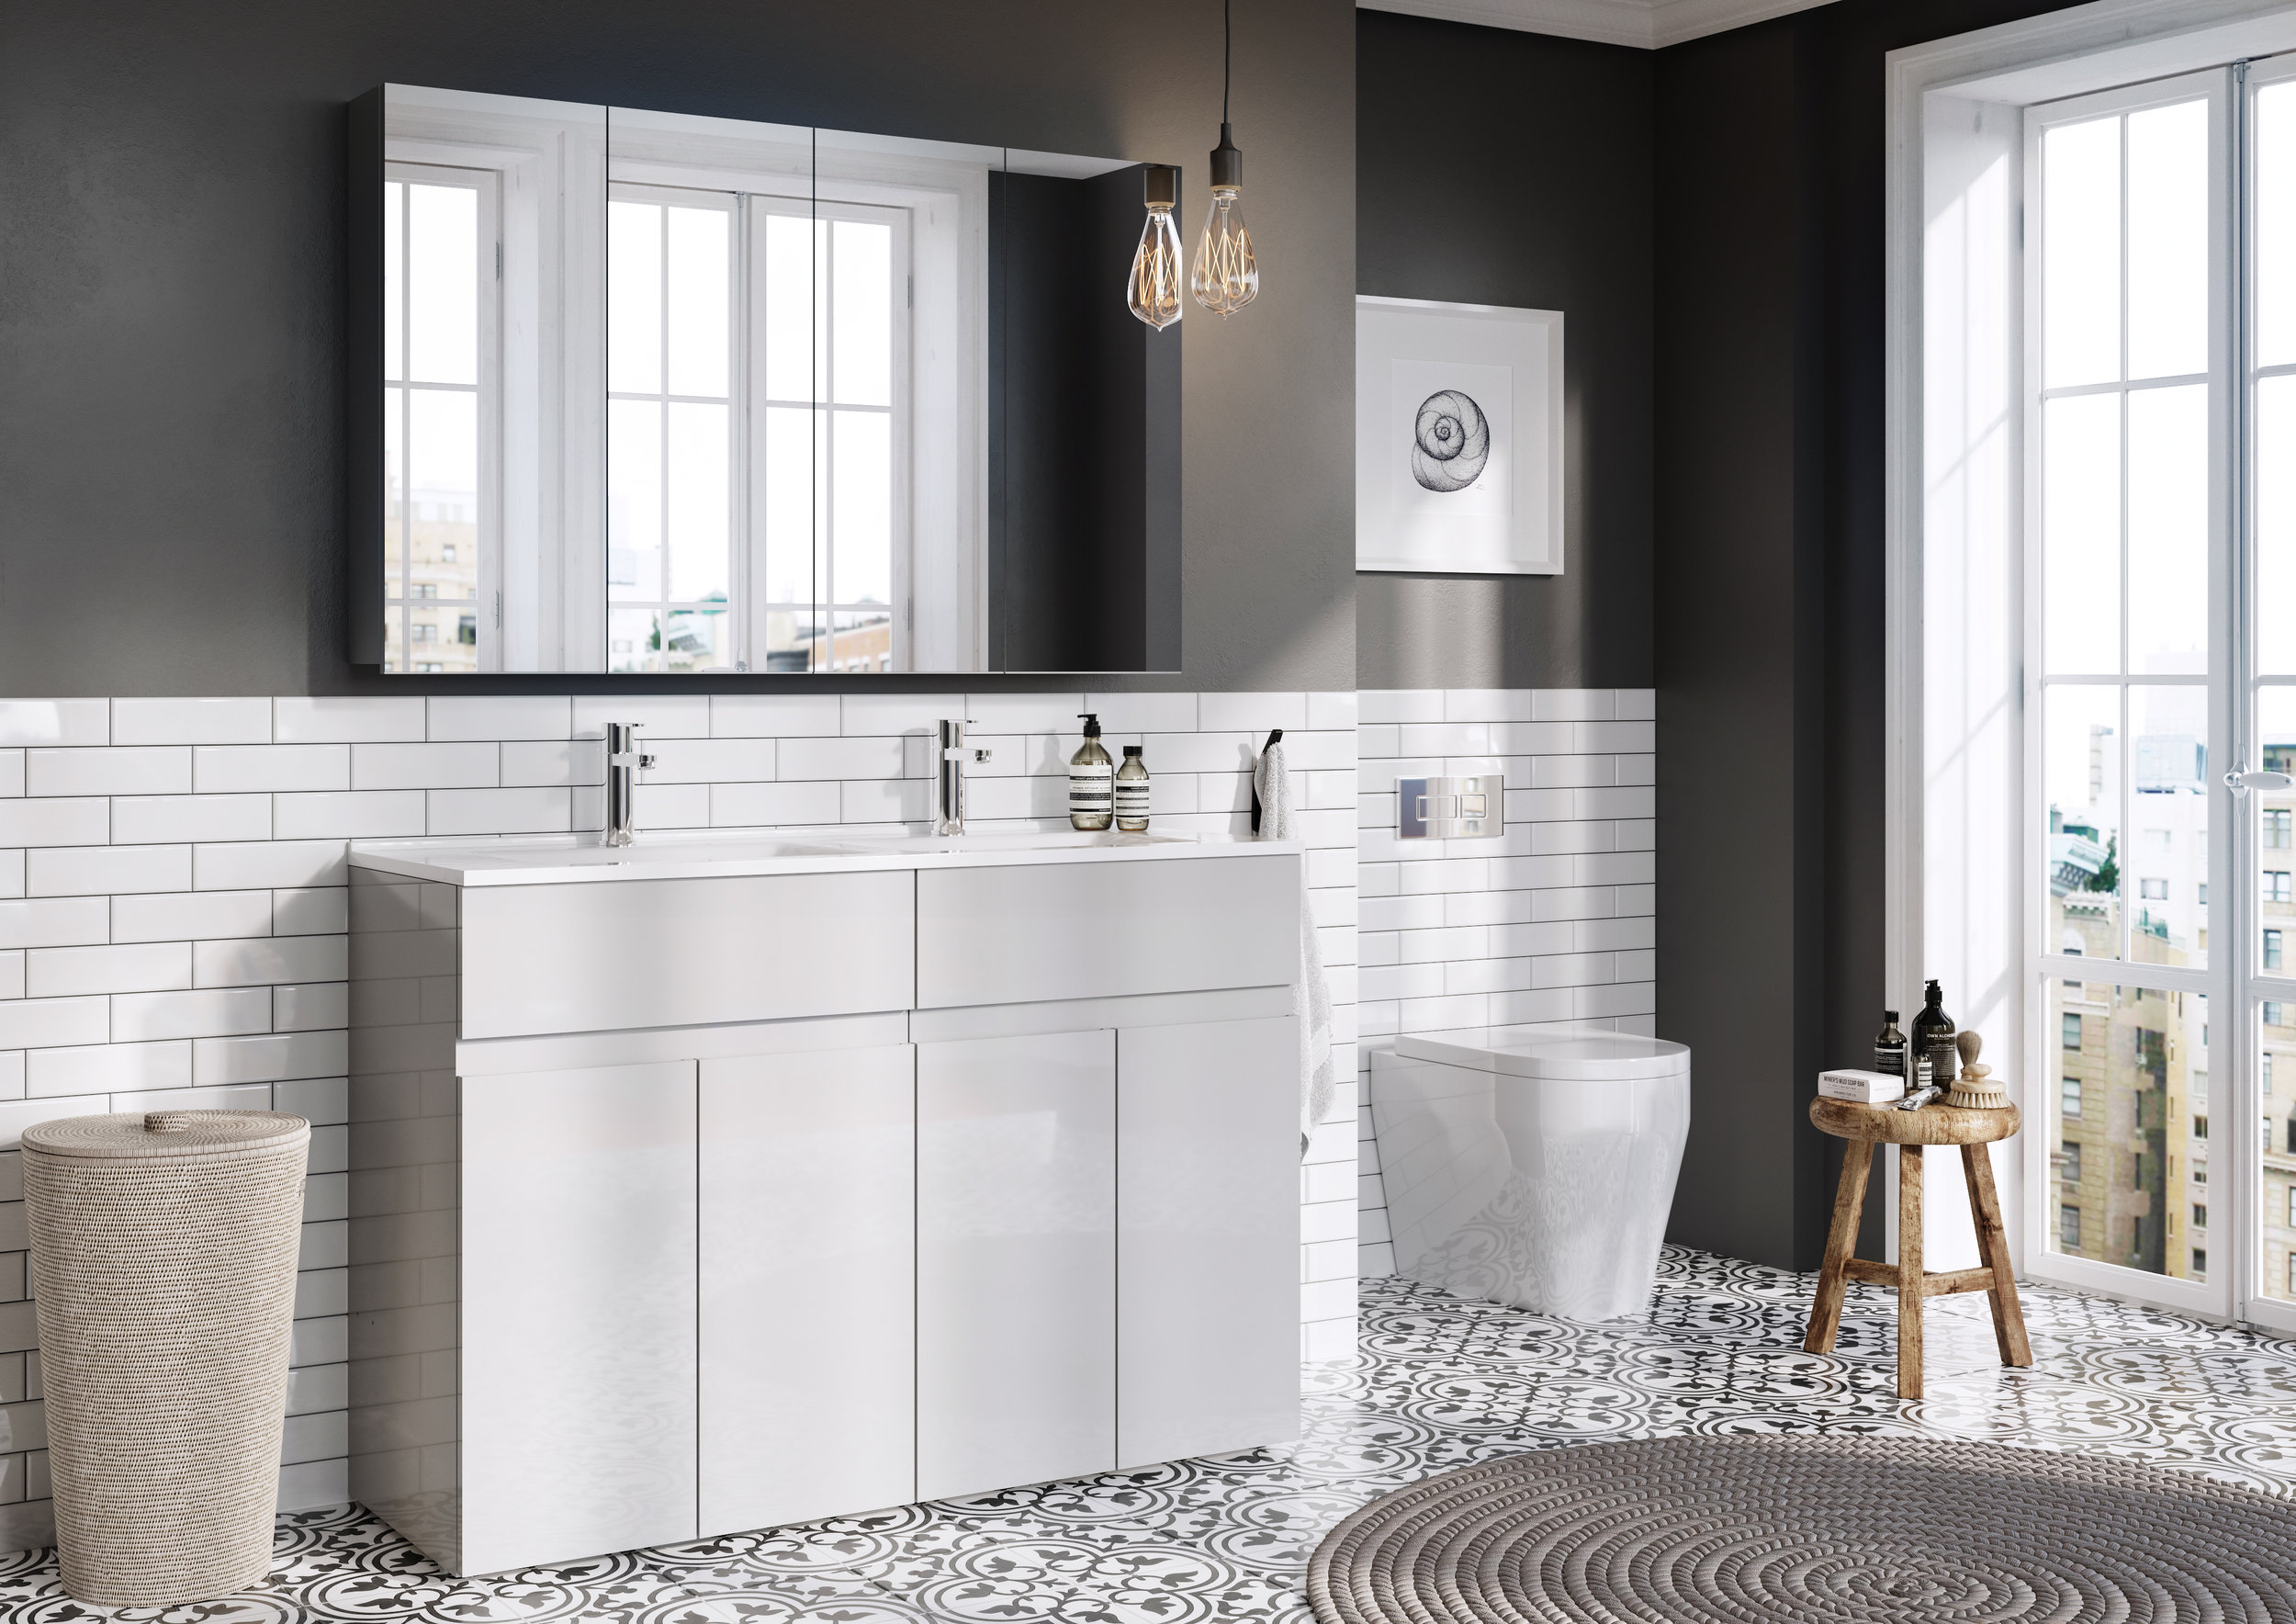 BRITTON - Britton Bathrooms offer comprehensive, modular ranges of beautifully designed contemporary bathroom products created by renowned international designer Tim Powell. Tim's intimate knowledge ensures both form and function is built into every product with the very best in engineering and performance.Visit the Britton Website